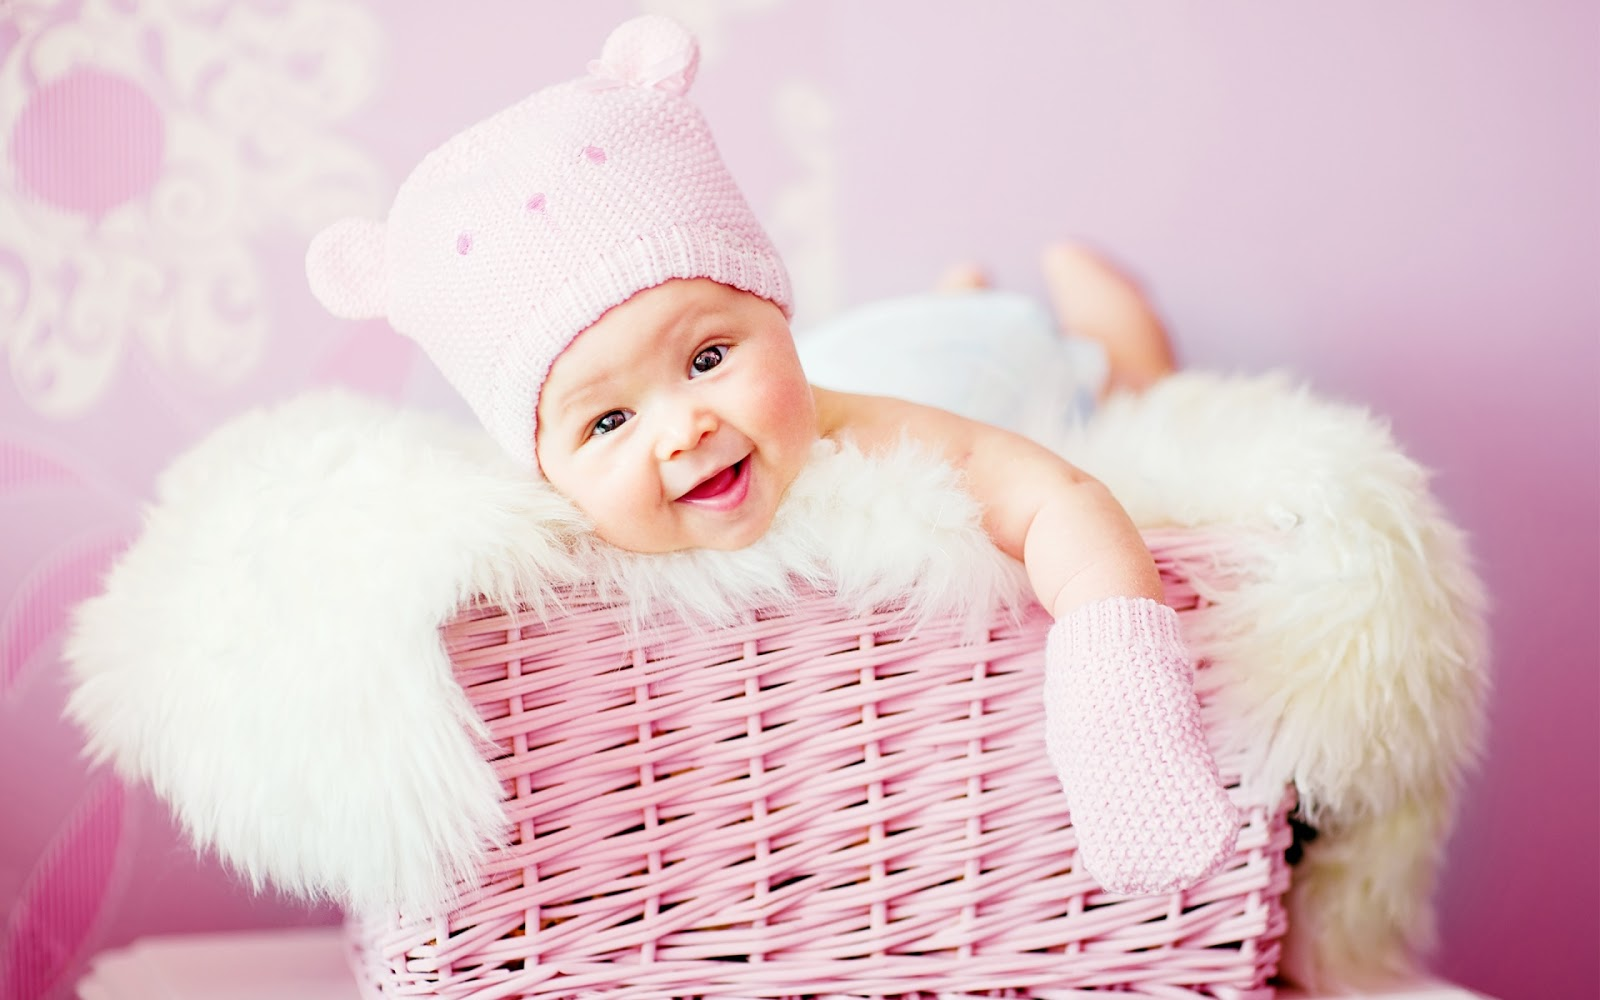 Cute Laughing Baby